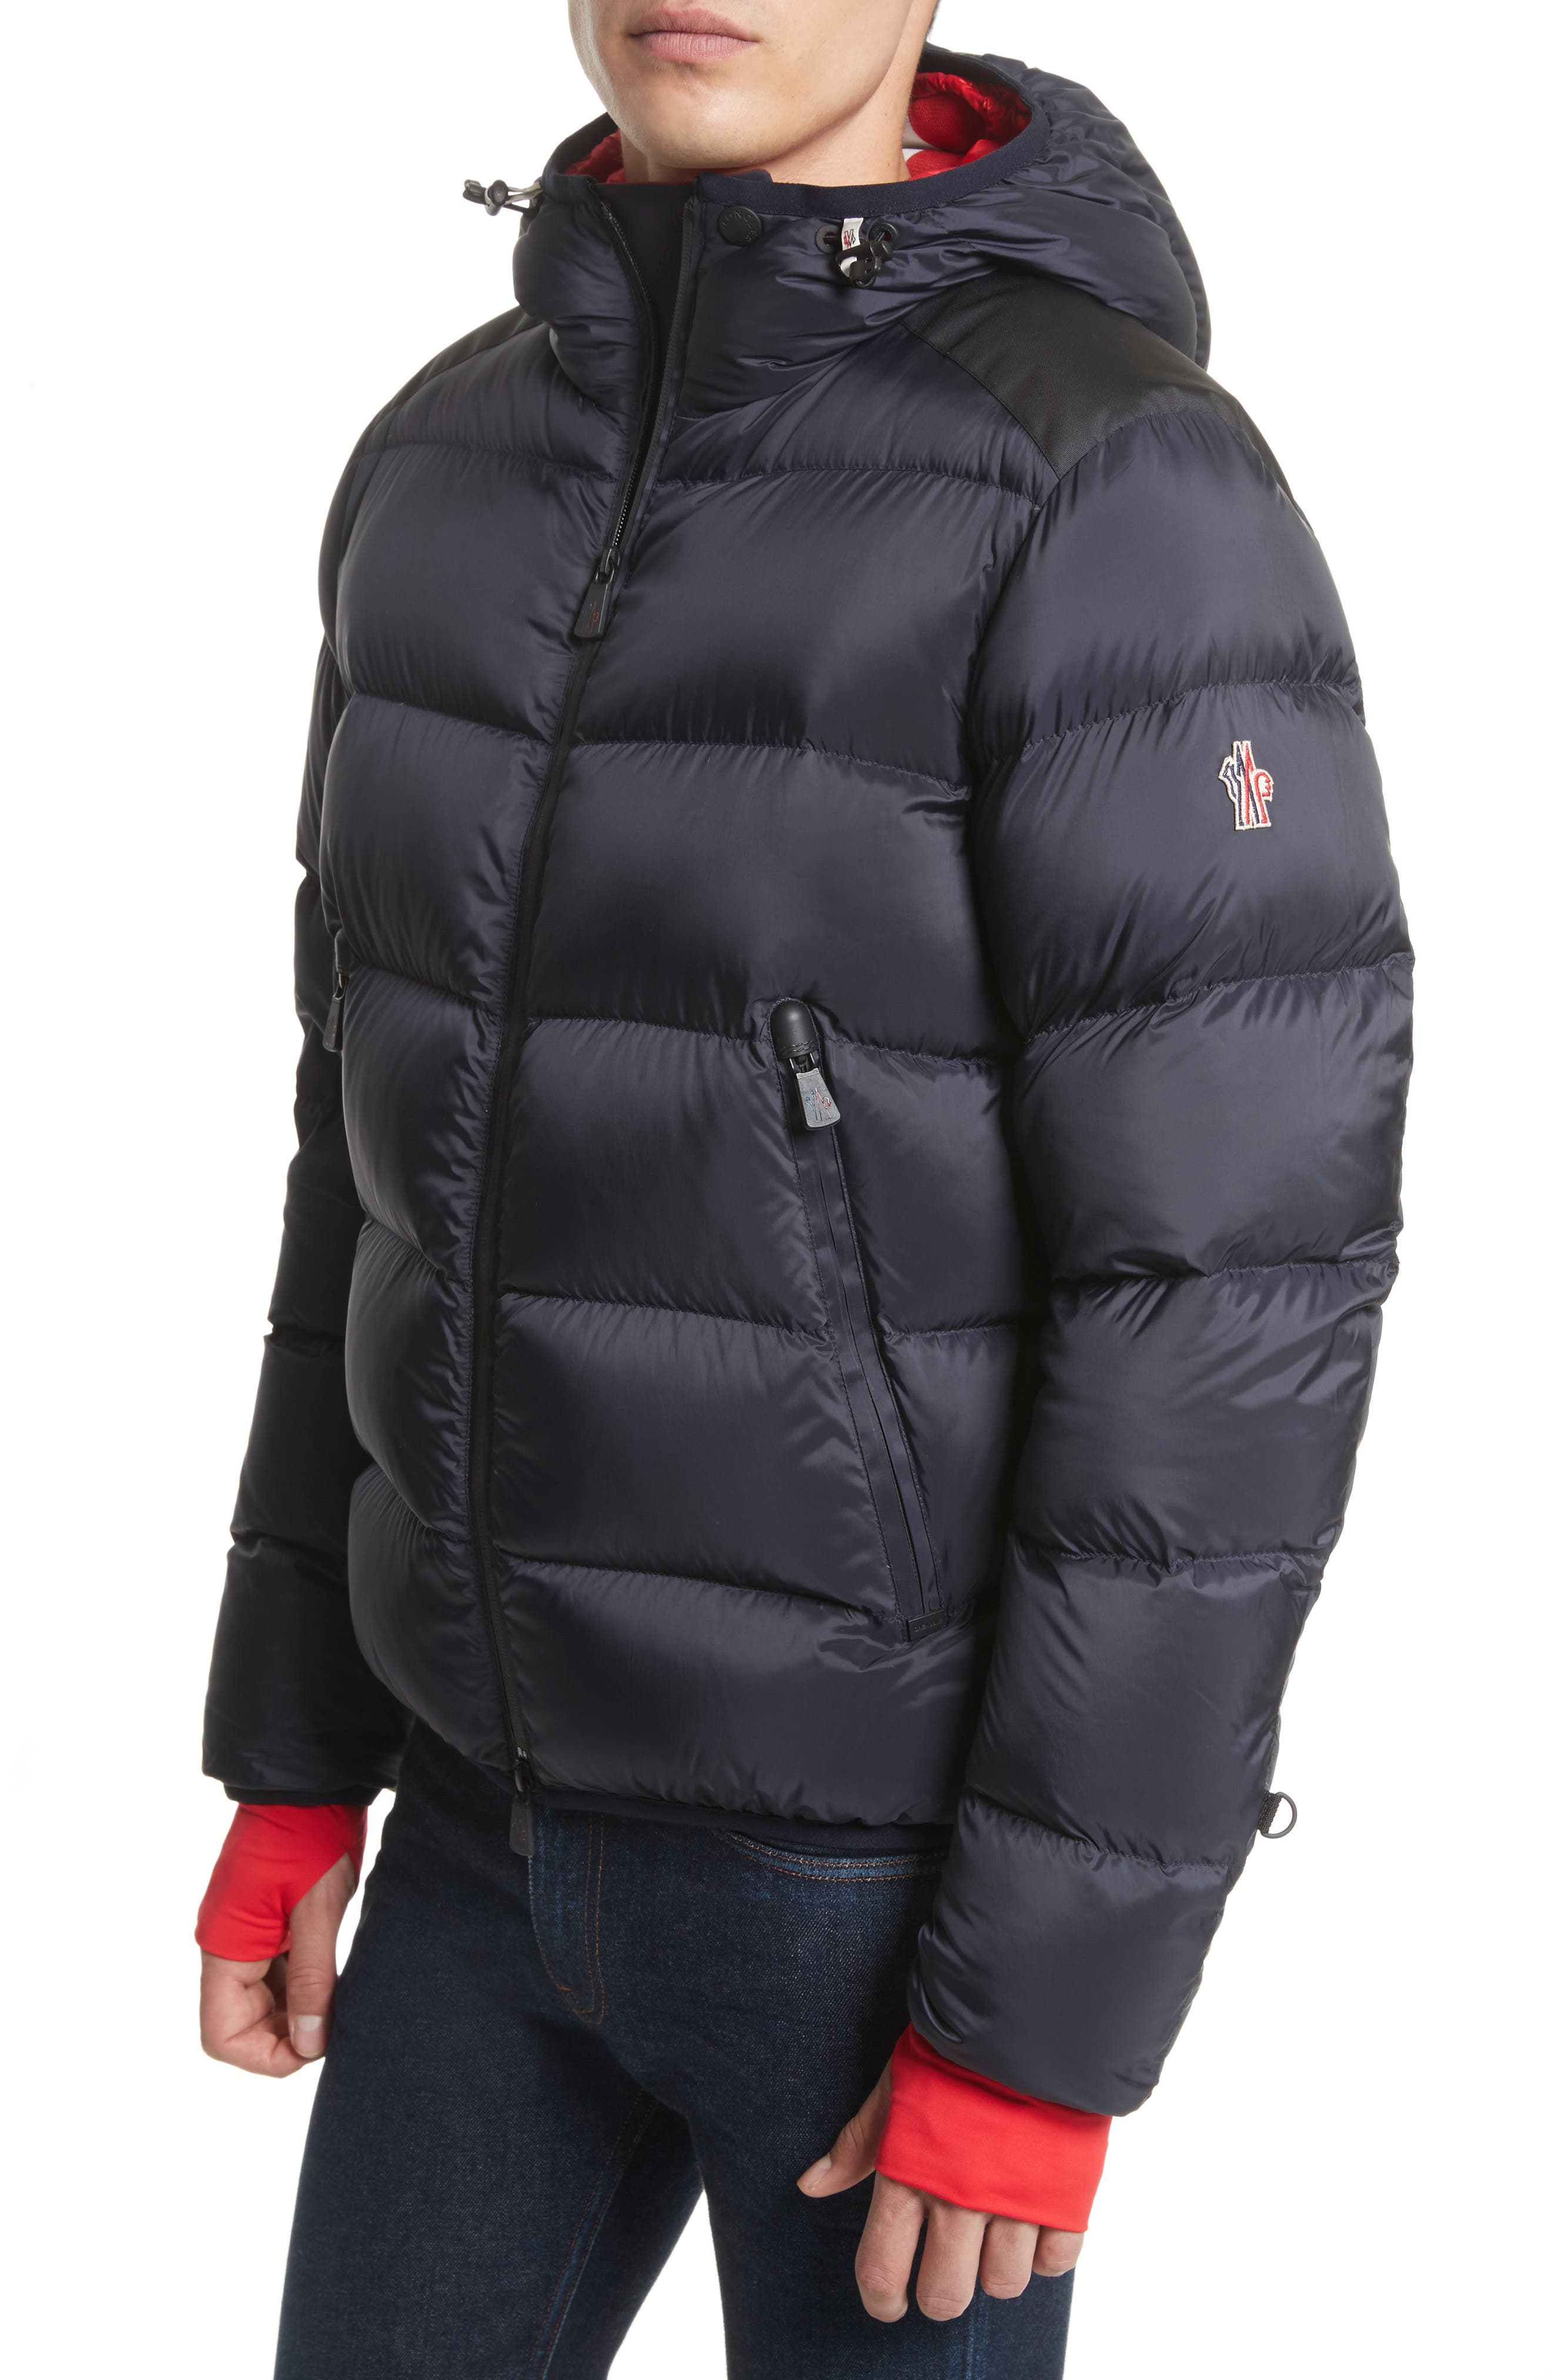 Moncler Grenoble Hintertux Hooded Down Jacket